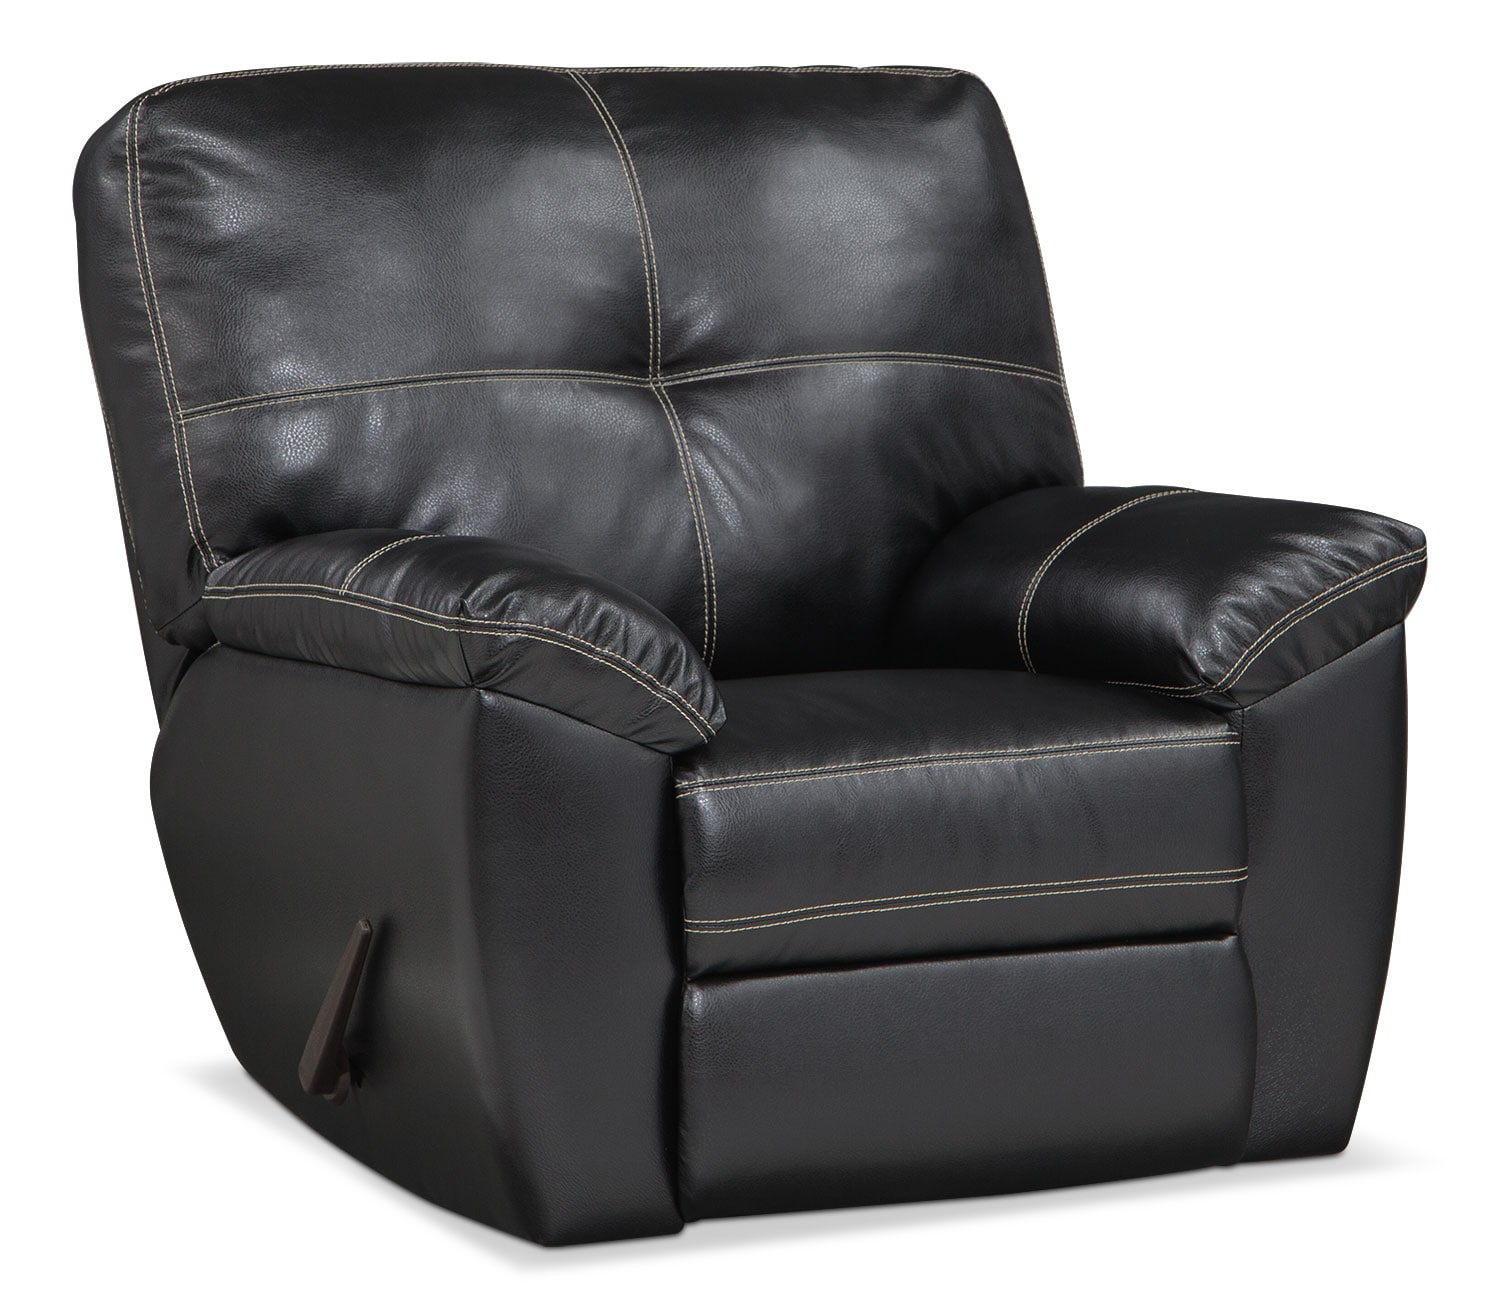 Living Room Furniture - Rialto Glider Recliner - Onyx